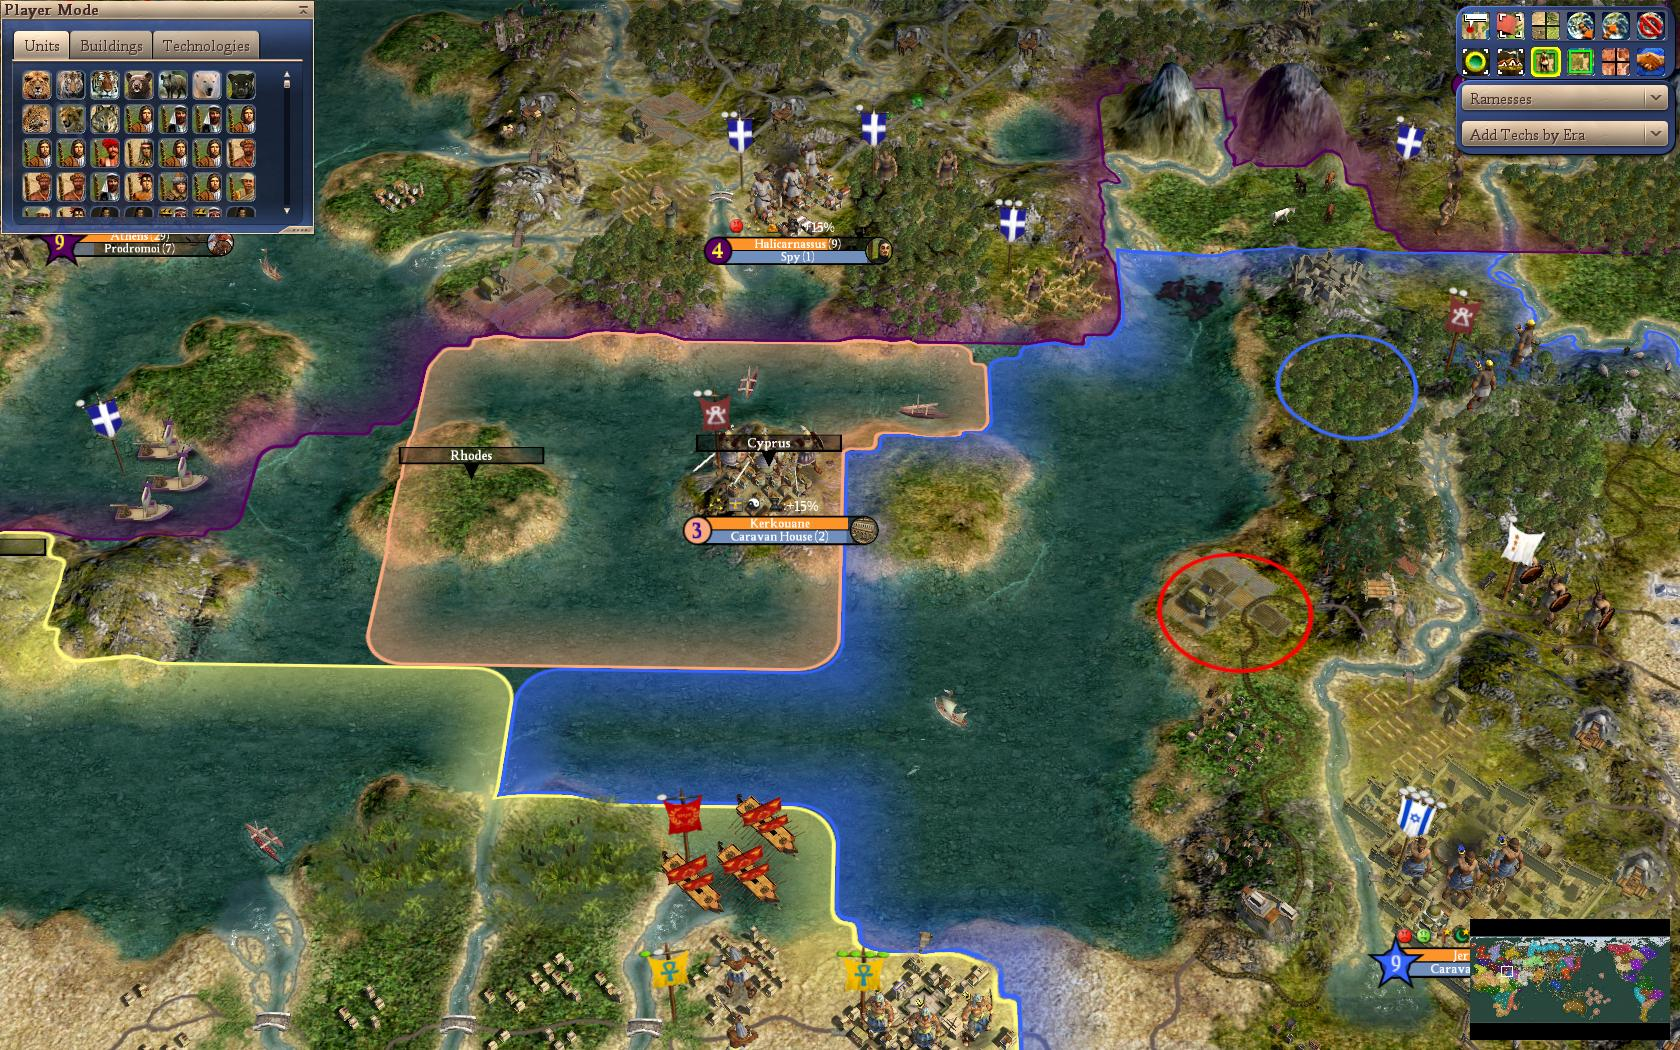 Civ 4 Earth Map.Civ 4 Maps Related Keywords Suggestions Civ 4 Maps Long Tail